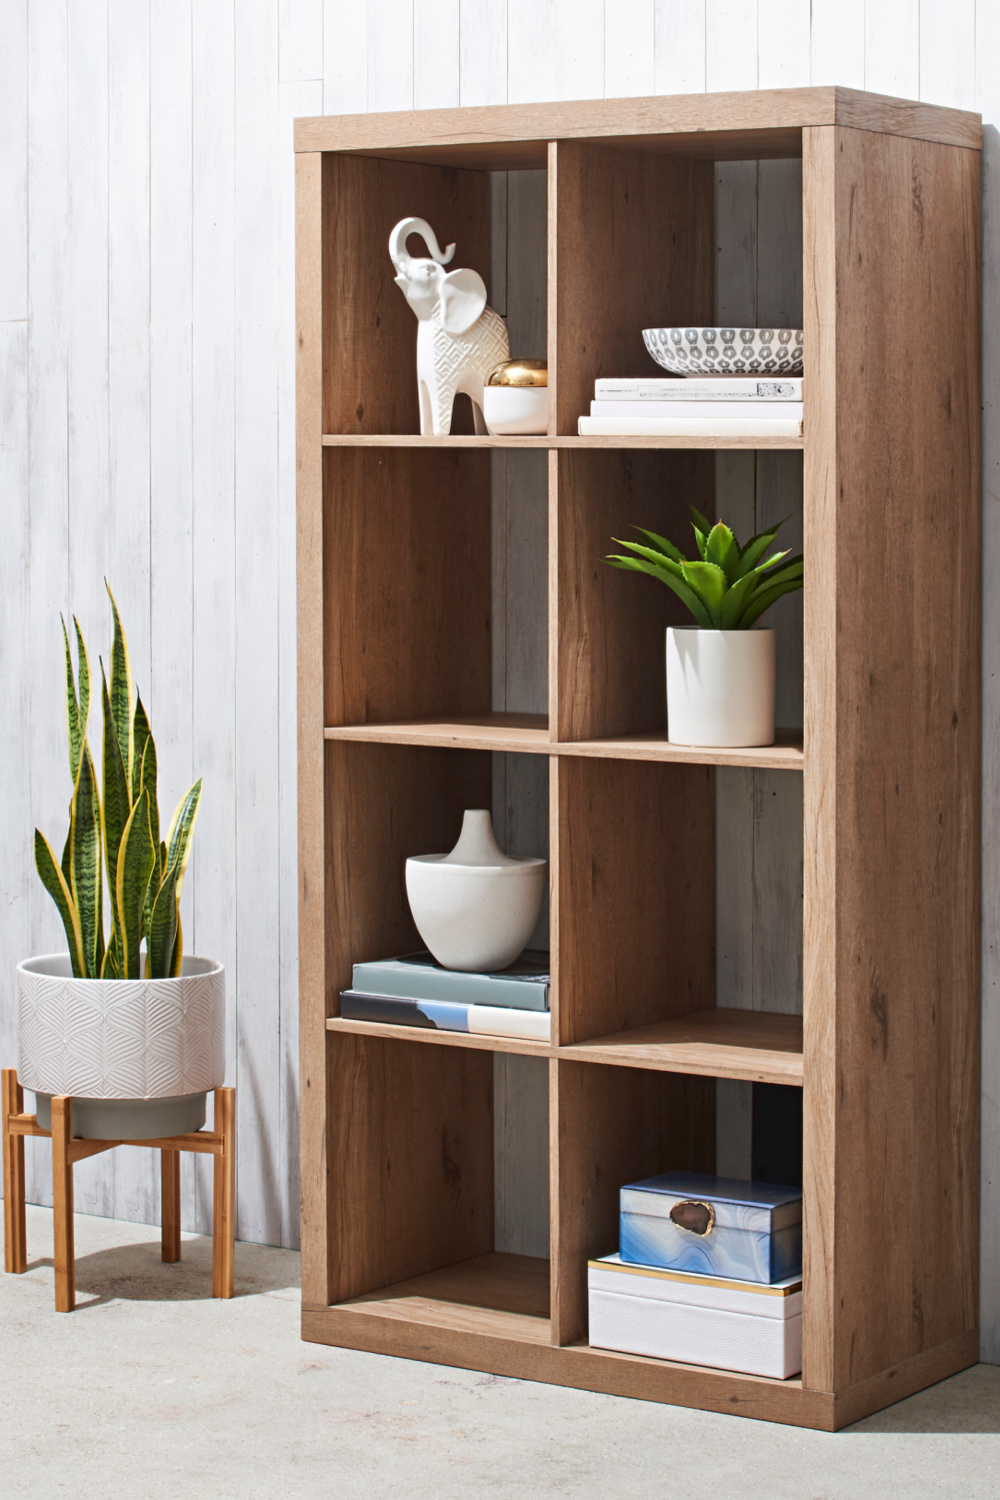 Cube Storage Organizer in natural finish from Better Homes & Gardens